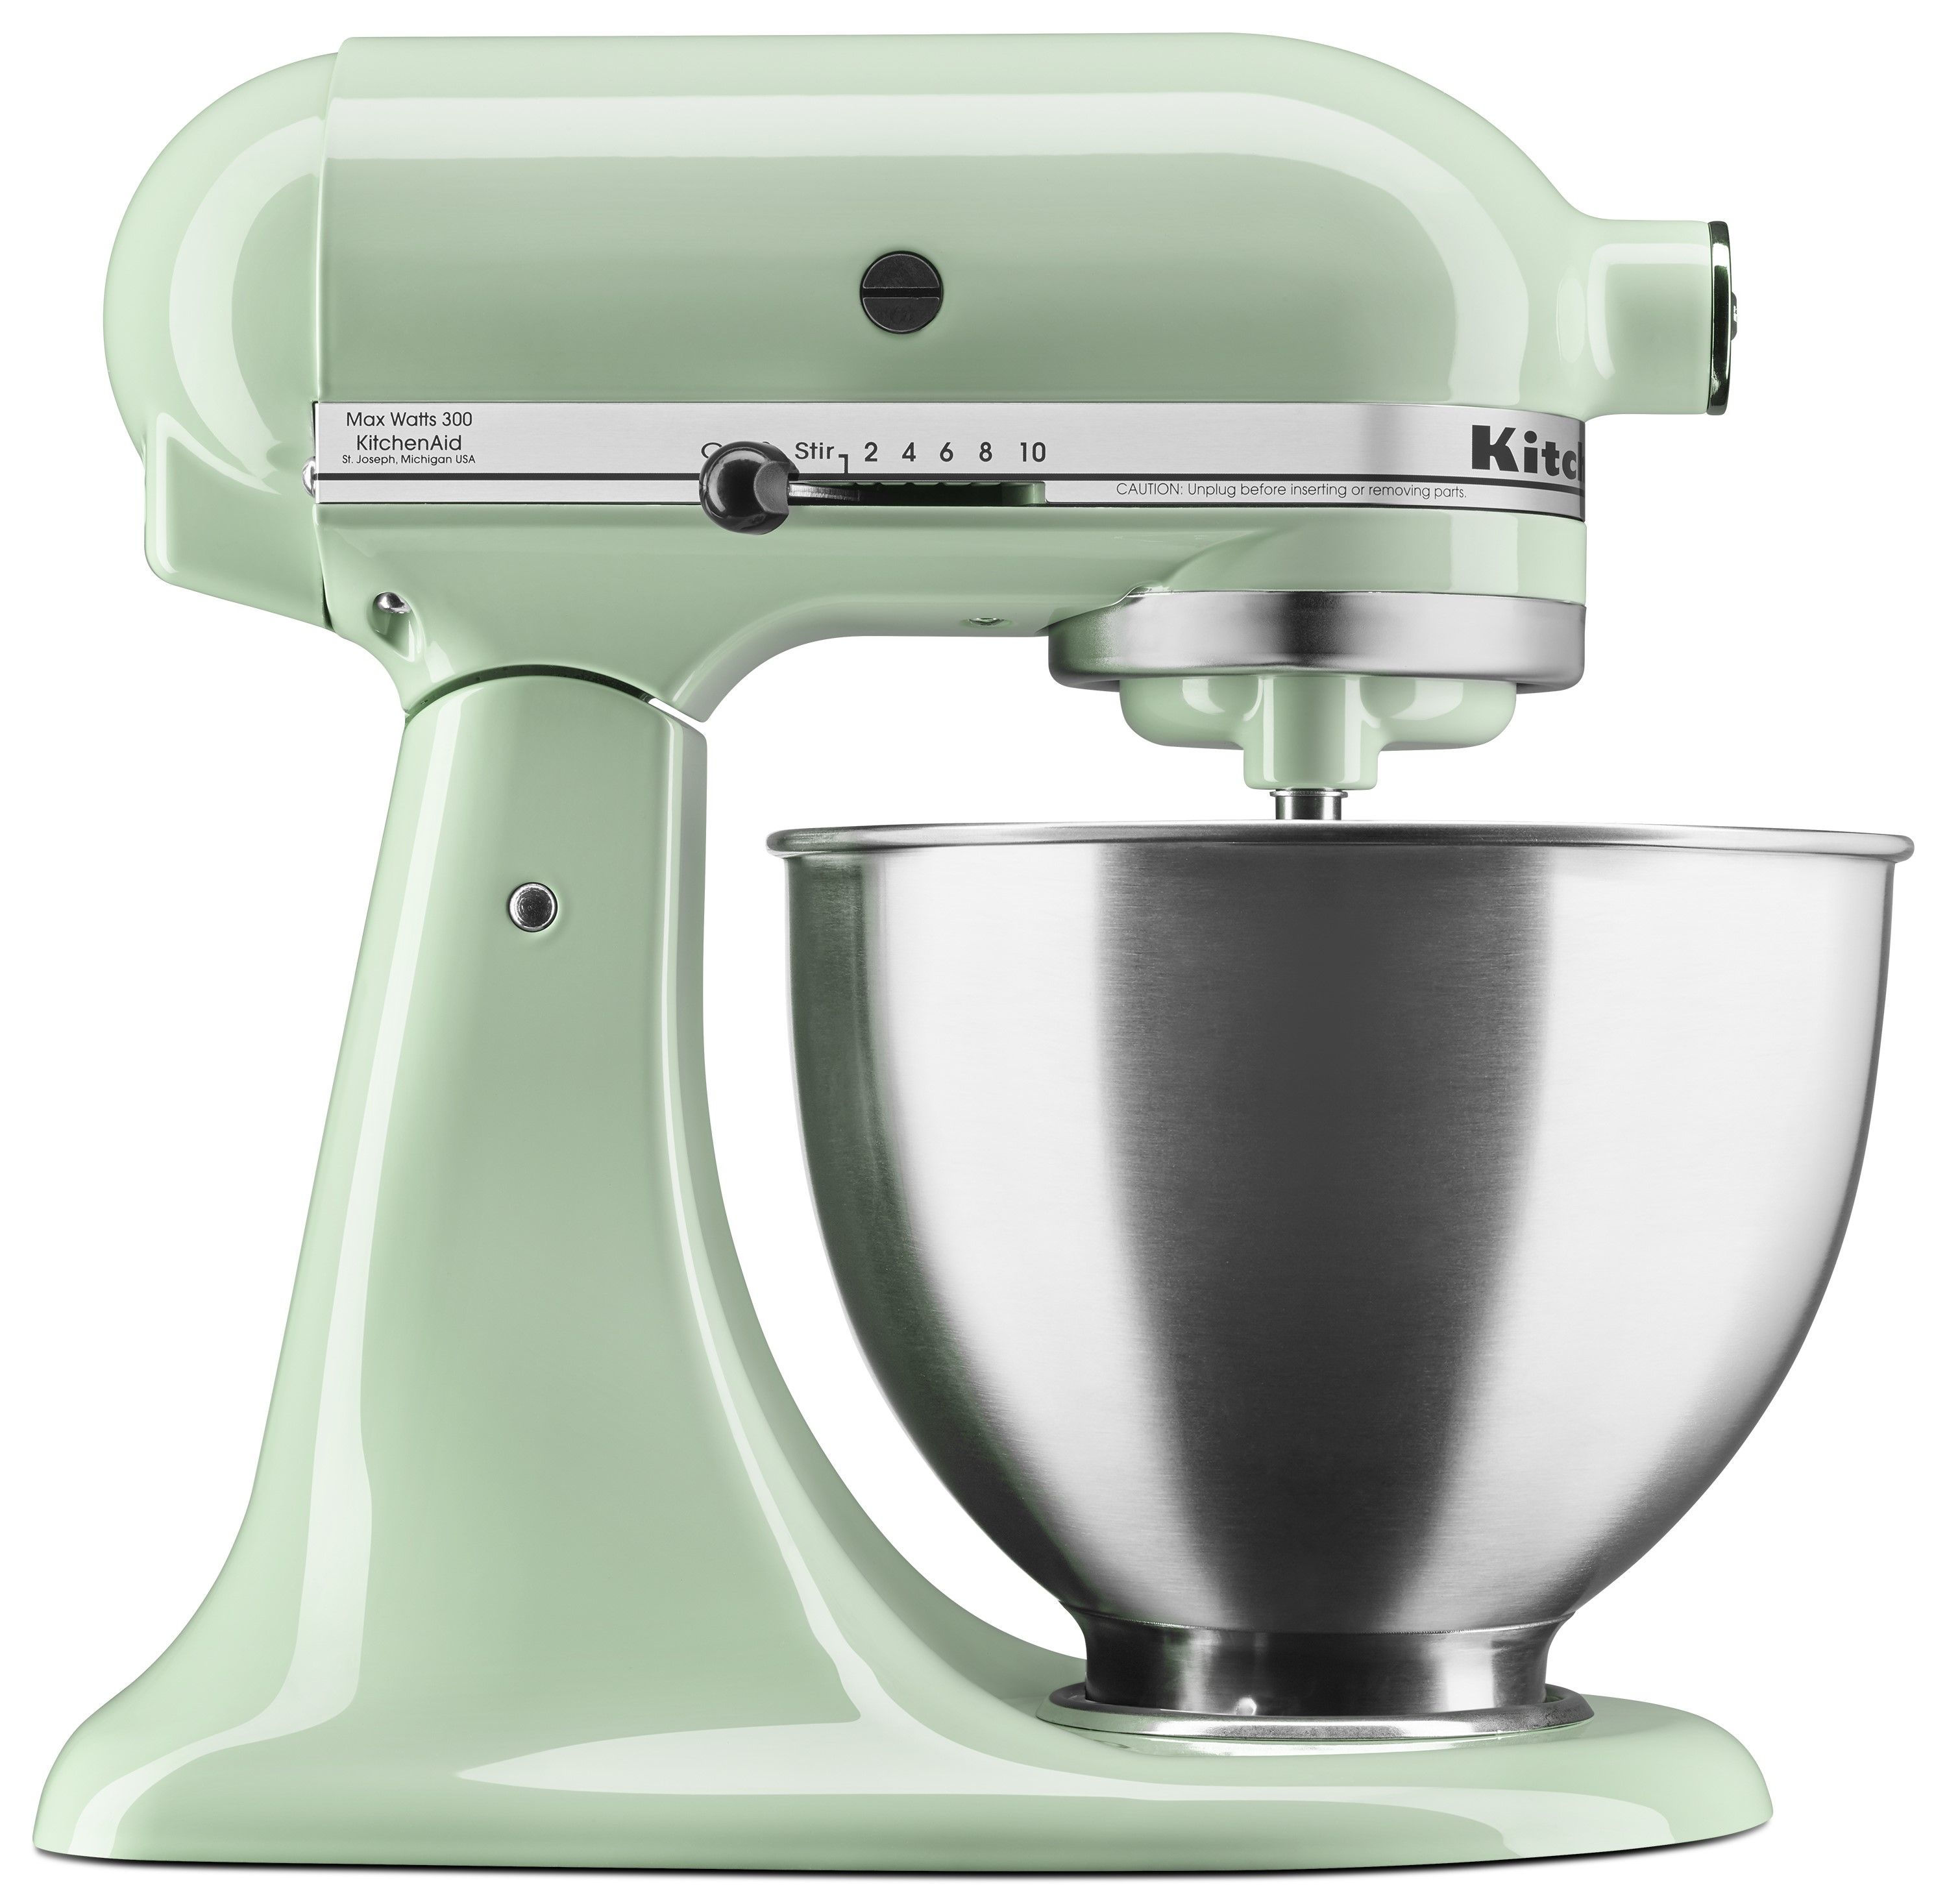 Kitchen Aid Mixer Sale: Shop Walmart's KitchenAid Stand Mixer Sale Now